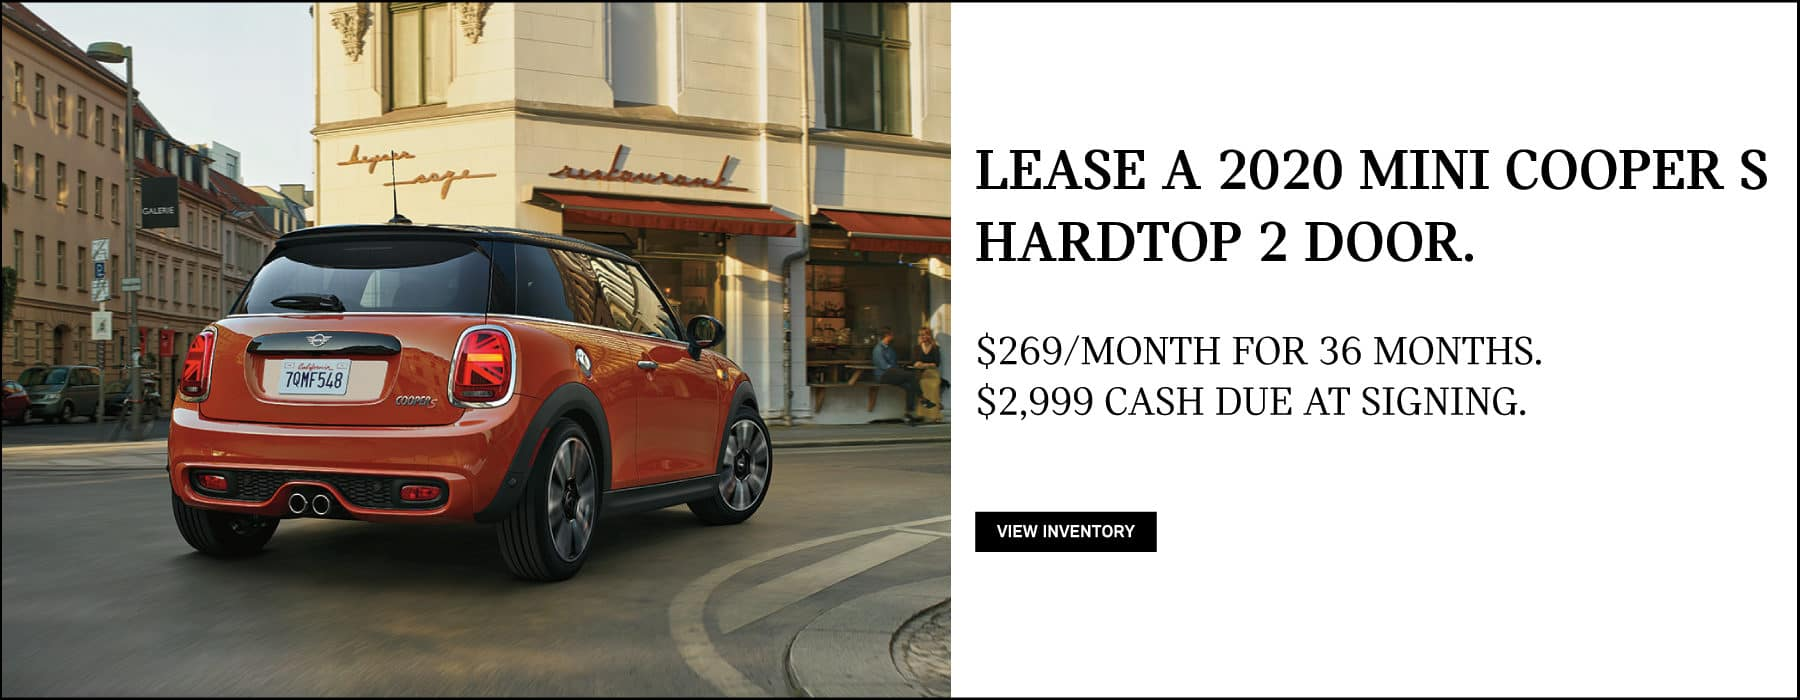 Lease a 2020 MINI Cooper S Hardtop 2 Door for $269/mo. View Inventory